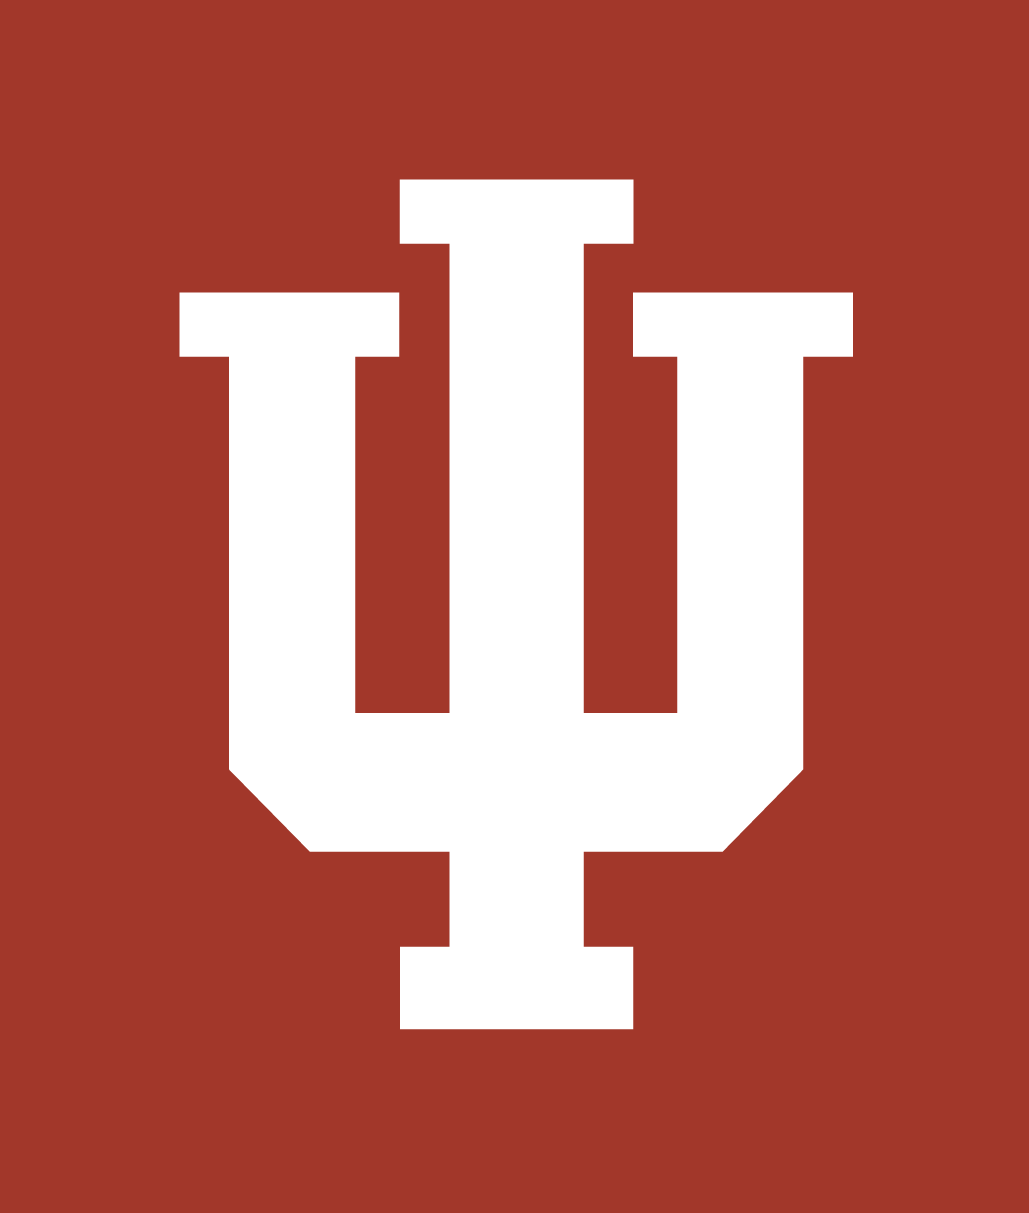 indiana-university-seeklogo.com